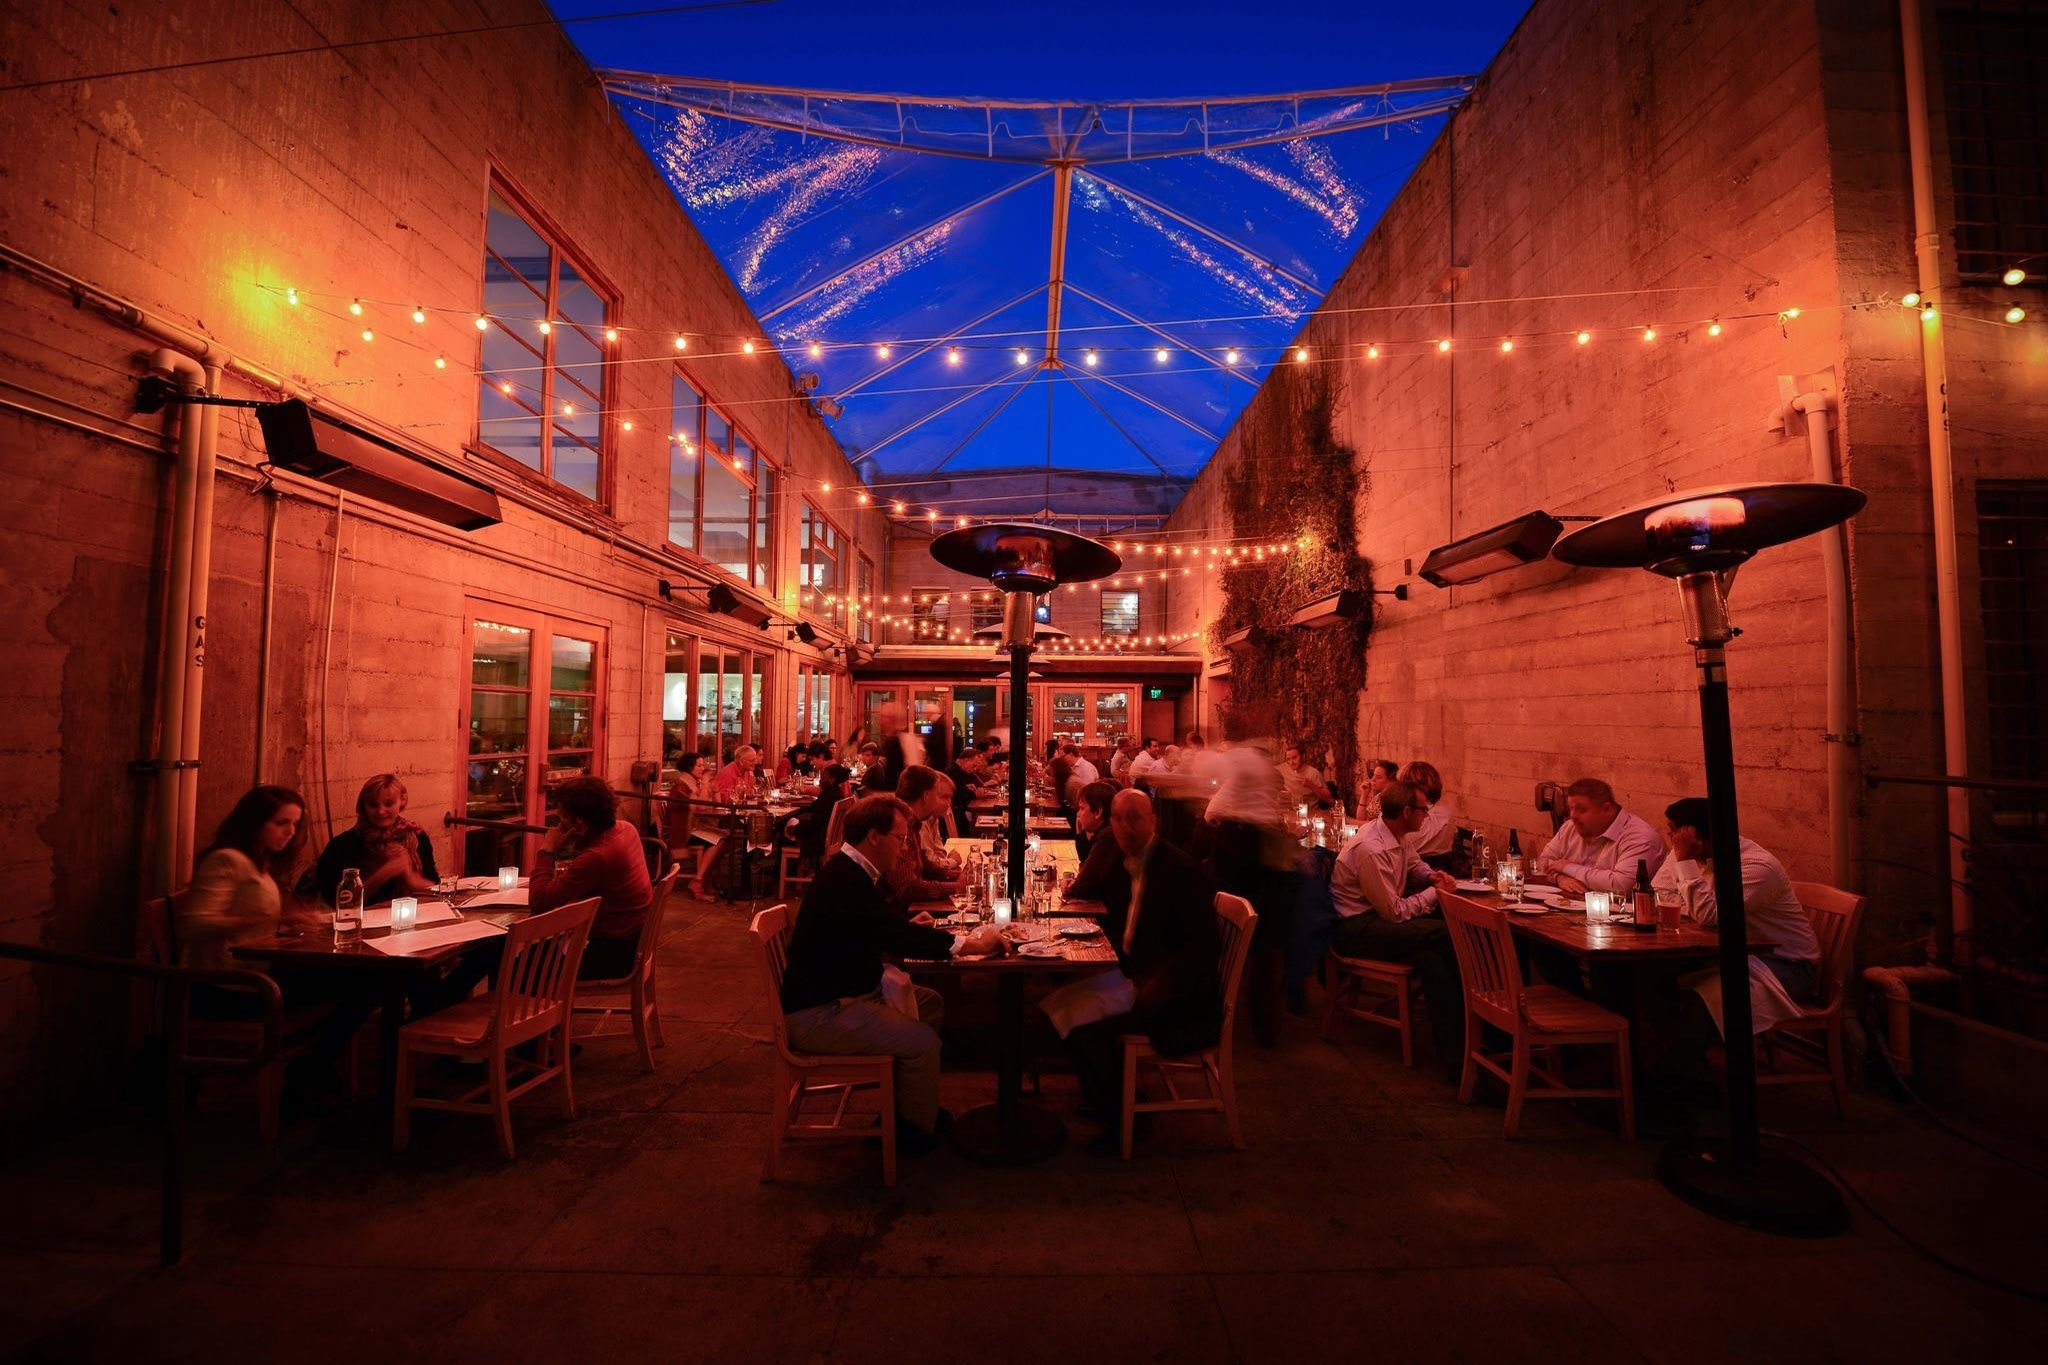 10 Stunning Date Ideas In San Francisco valentines day ideas from sweet gifts to romantic restaurants 1 2020